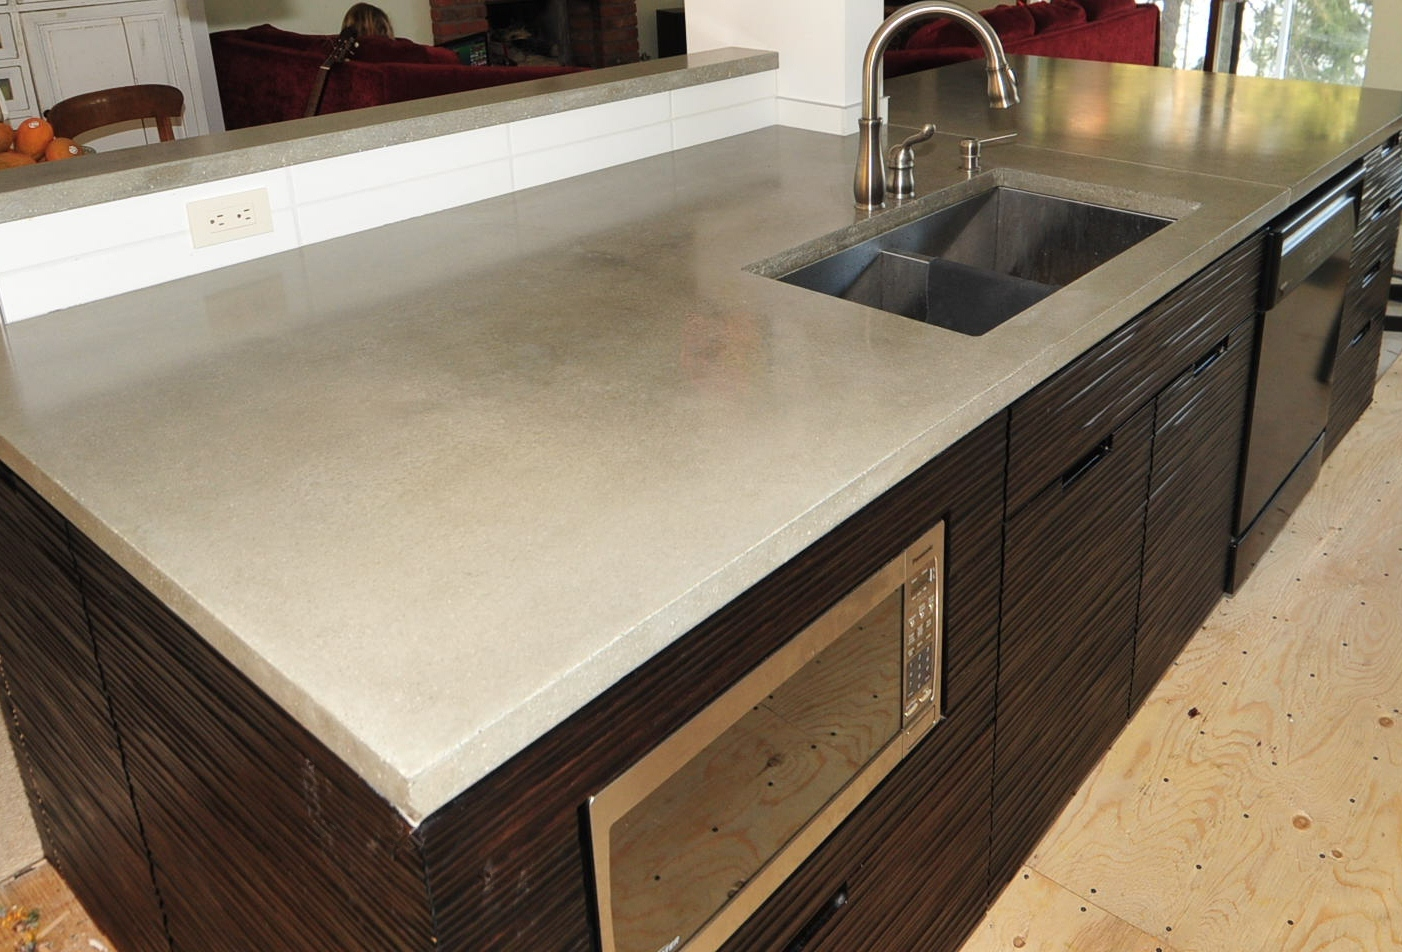 Mode concrete ultra chic and modern concrete kitchen for Kitchen countertops